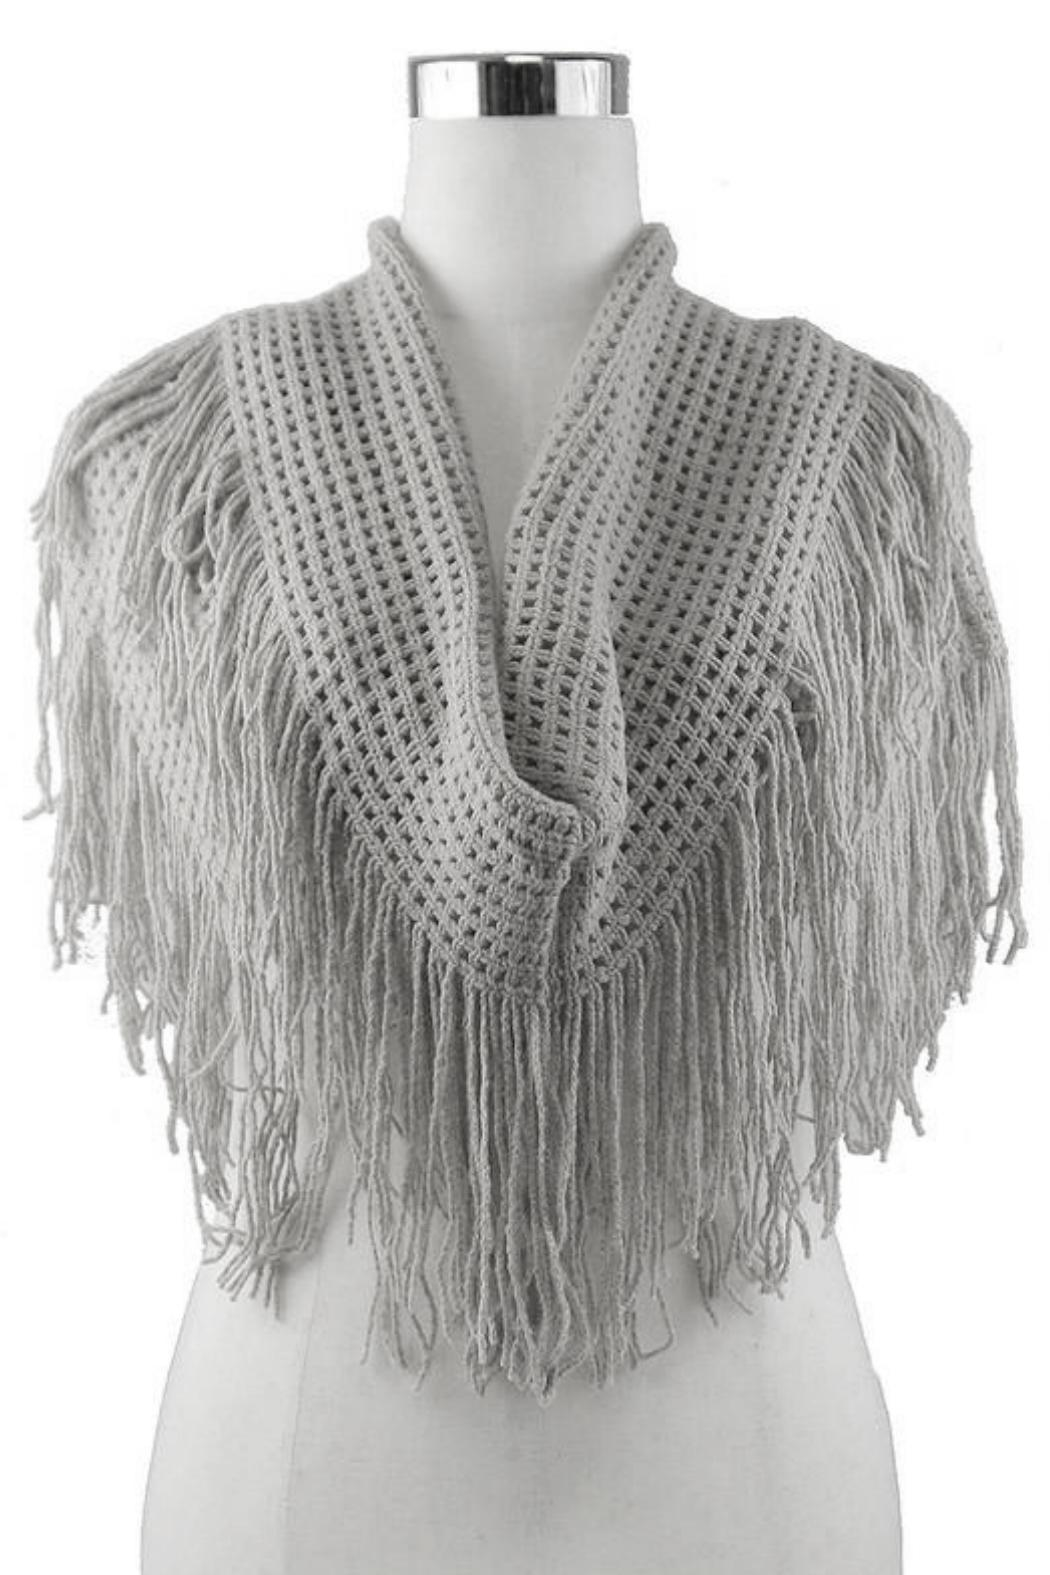 Minx Fringe Infinity Scarf From California By Minx Shoptiques